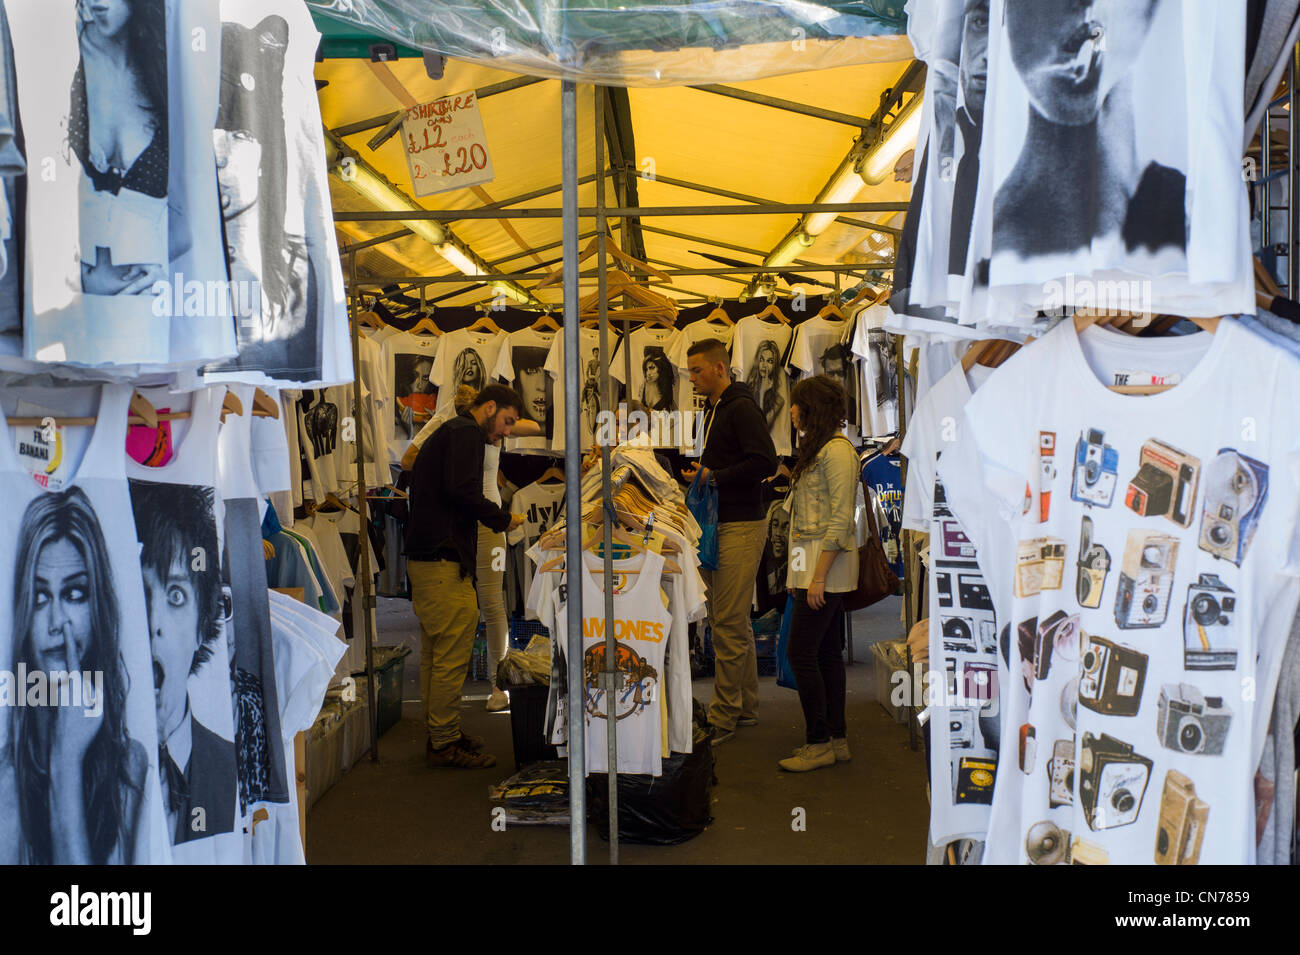 t shirt market stall in camden market camden town london england stock photo royalty free. Black Bedroom Furniture Sets. Home Design Ideas